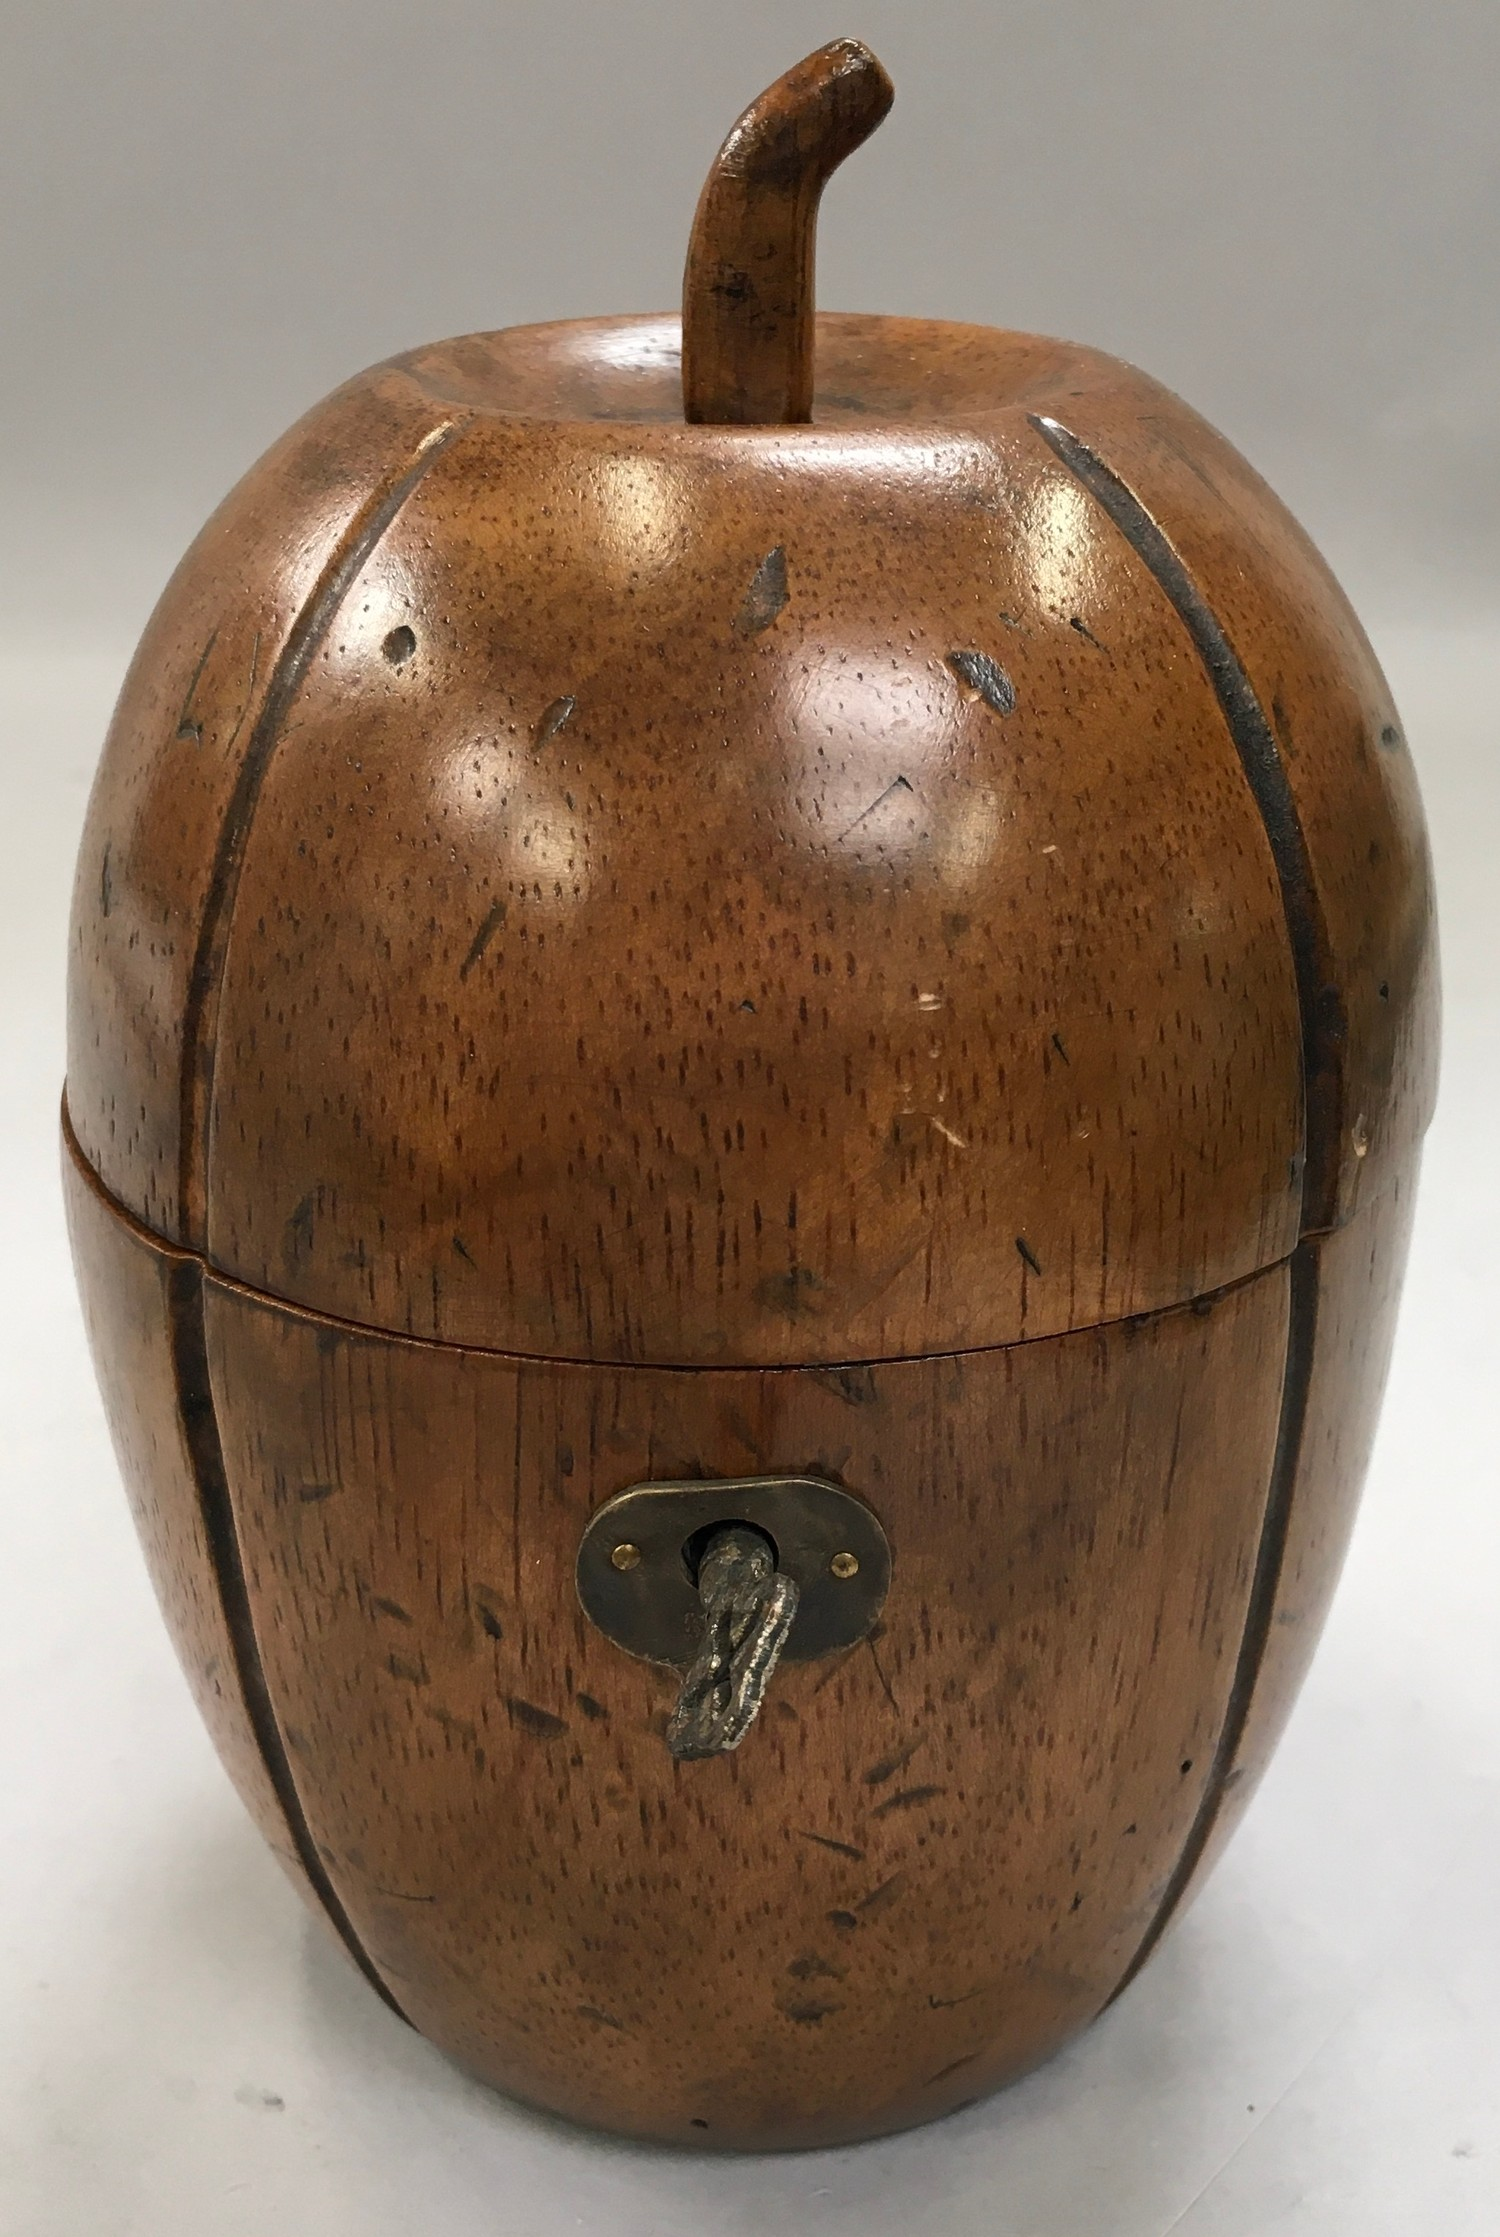 A Georgian style fruit wood tea caddy in the form of a melon with a key